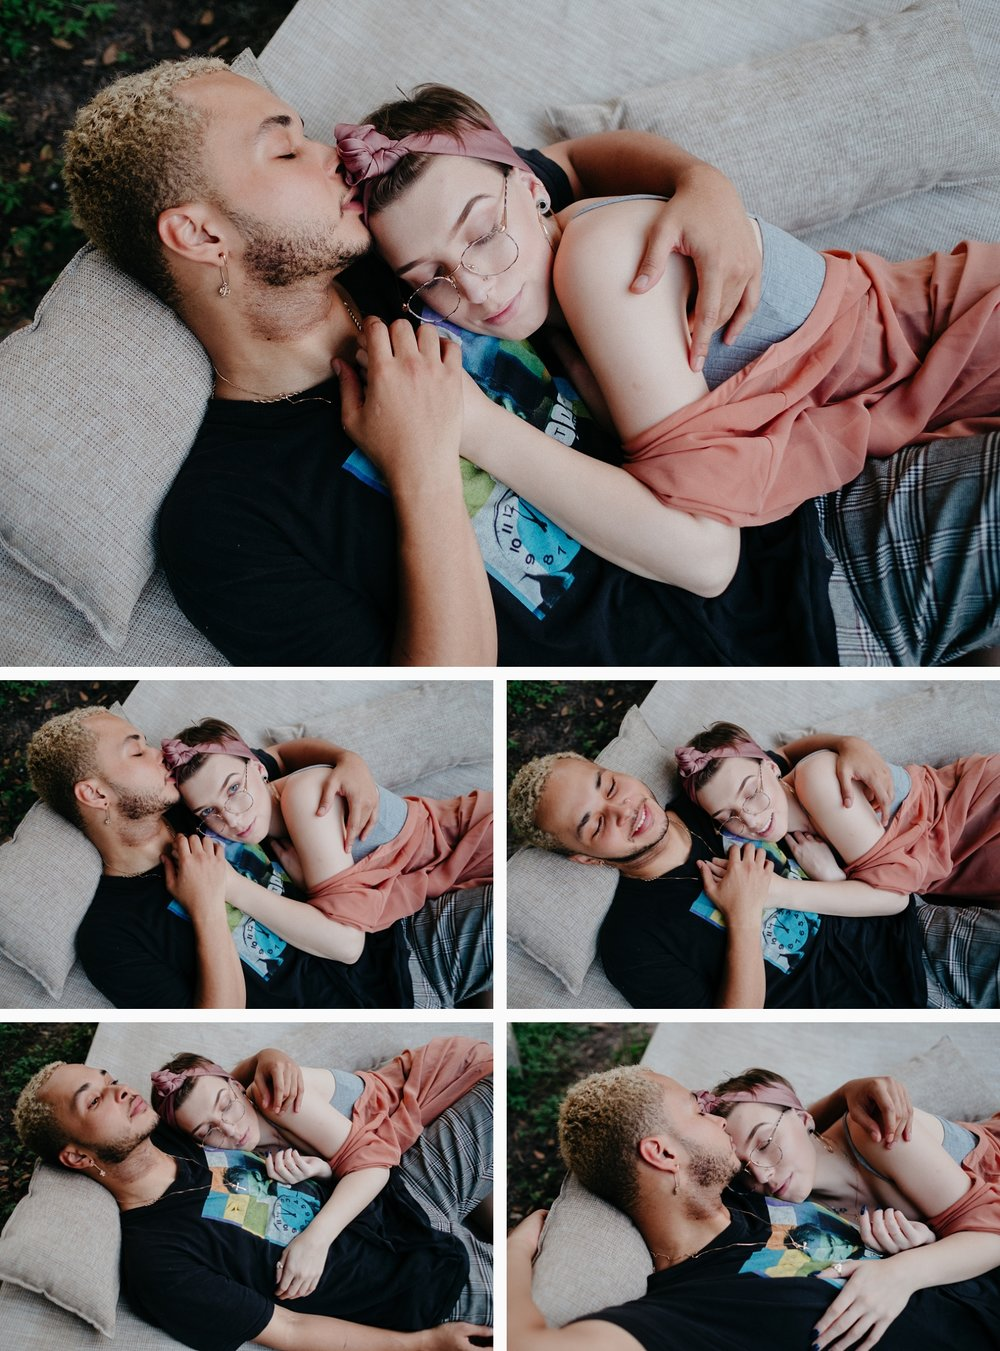 Lauren-And-Dom-Orlando-In-Home-Couples-Session-_0018.jpg